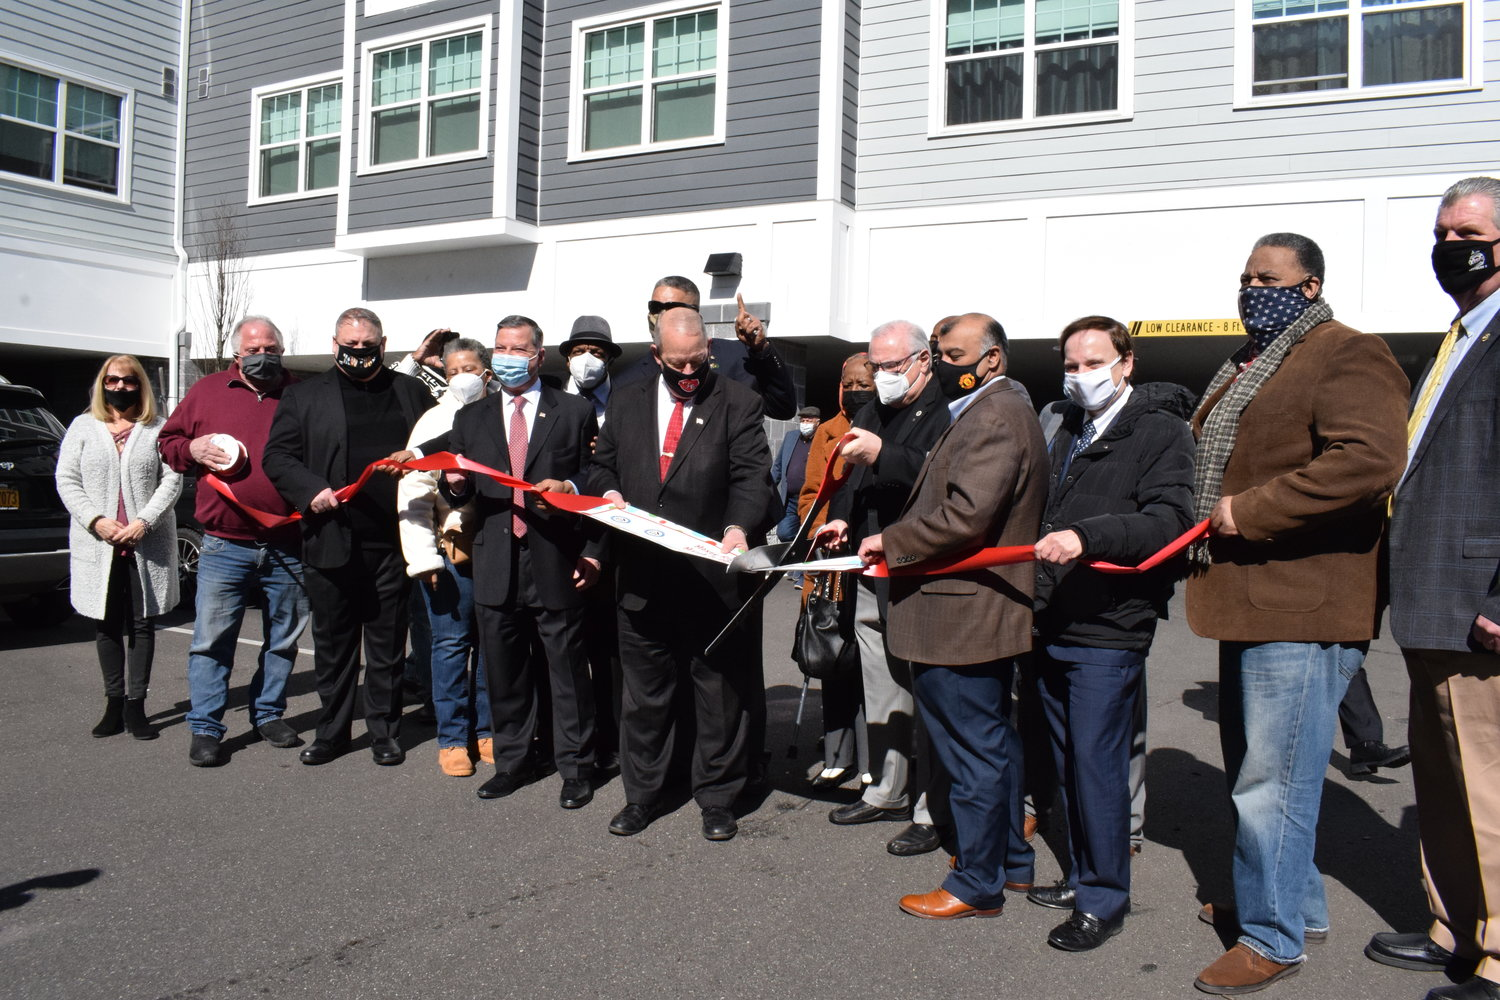 Freeport Village and Housing Authority officials, joined by the family of the late Judge Moxey Rigby, held the official ribbon cutting ceremony for the new Moxey Rigby building on March 3.